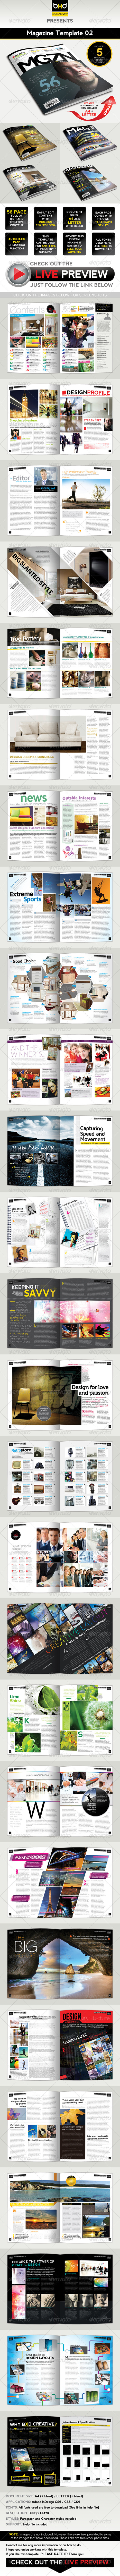 GraphicRiver Magazine Template InDesign 56 Page Layout V1 2715890